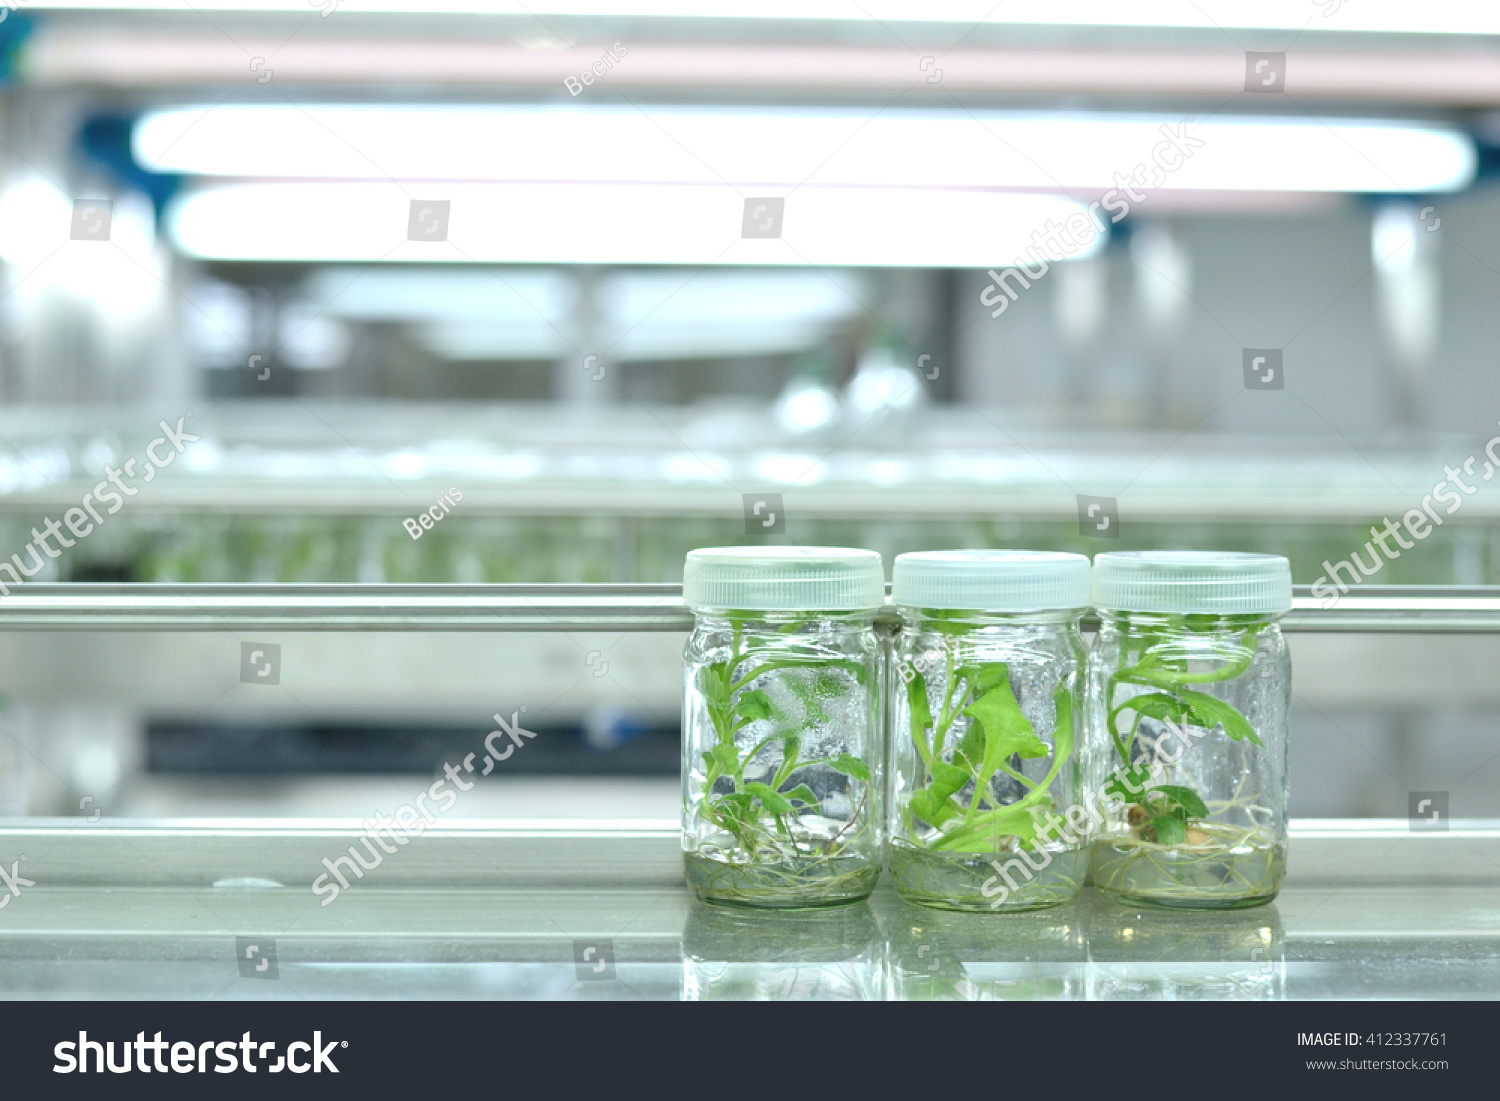 Plant Tissue Culture Science Research Laboratory Stock Photo ...